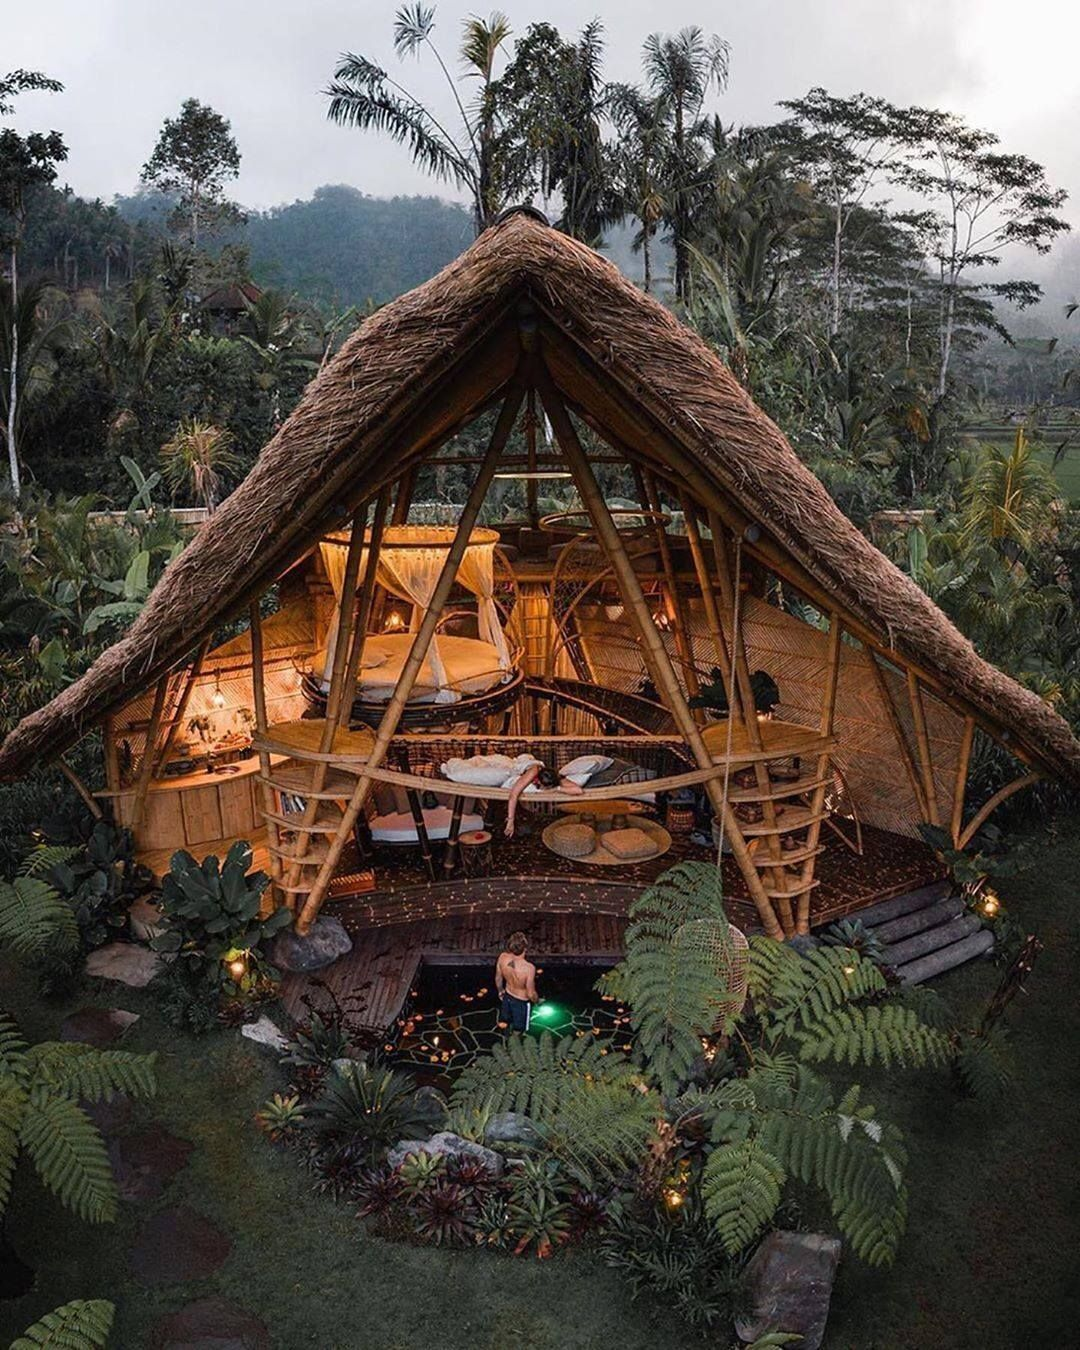 Bali Treehouse In 2020 Bamboo House Bamboo Architecture Architecture